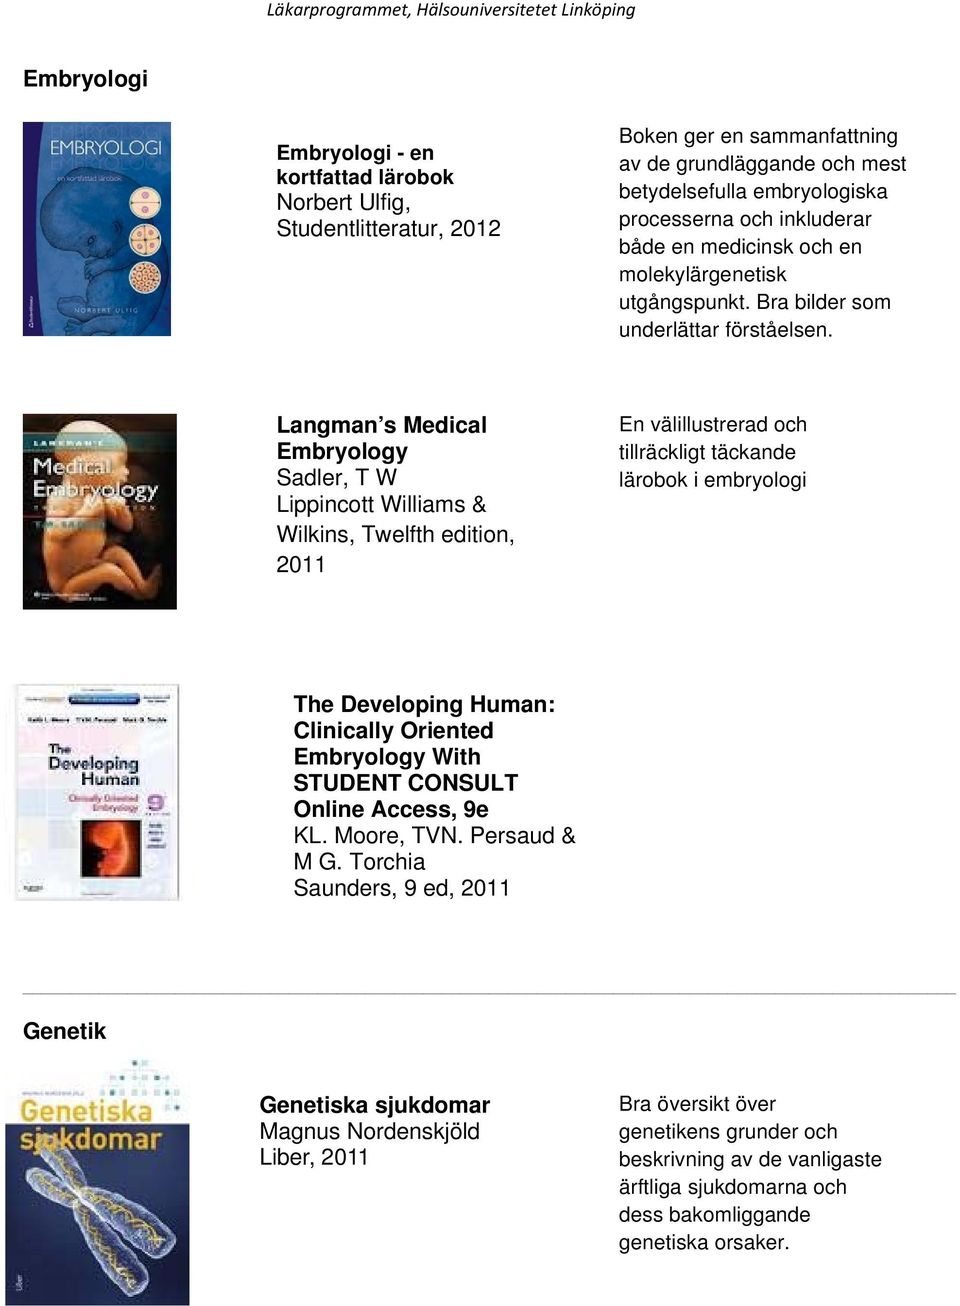 Langman s Medical Embryology Sadler, T W Lippincott Williams & Wilkins, Twelfth edition, 2011 En välillustrerad och tillräckligt täckande lärobok i embryologi The Developing Human: Clinically